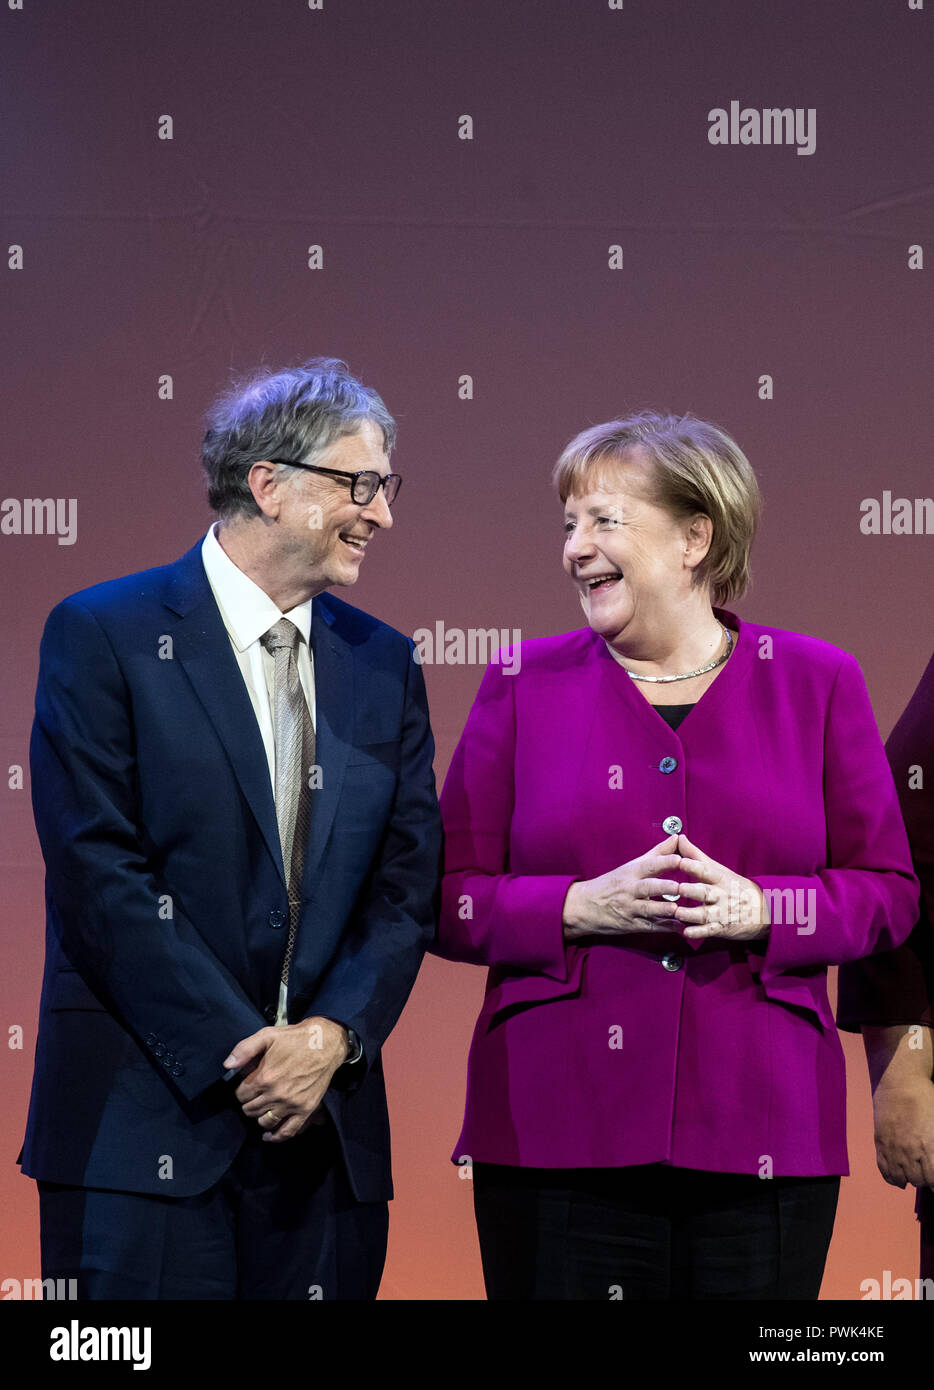 Berlin, Germany. 16 October 2018, Berlin: 16 October 2018, Germany, Berlin: Bill Gates, founder of Microsoft and the Bill & Melinda Gates Foundation, and Chancellor Angela Merkel (CDU) are onstage at the closing event of the World Health Summit 2018. Around 2,000 participants and 300 speakers from 100 countries discussed pressing issues of global health care and the prevention of preventable diseases at the three-day event. Photo: Bernd von Jutrczenka/dpa Credit: dpa picture alliance/Alamy Live News - Stock Image